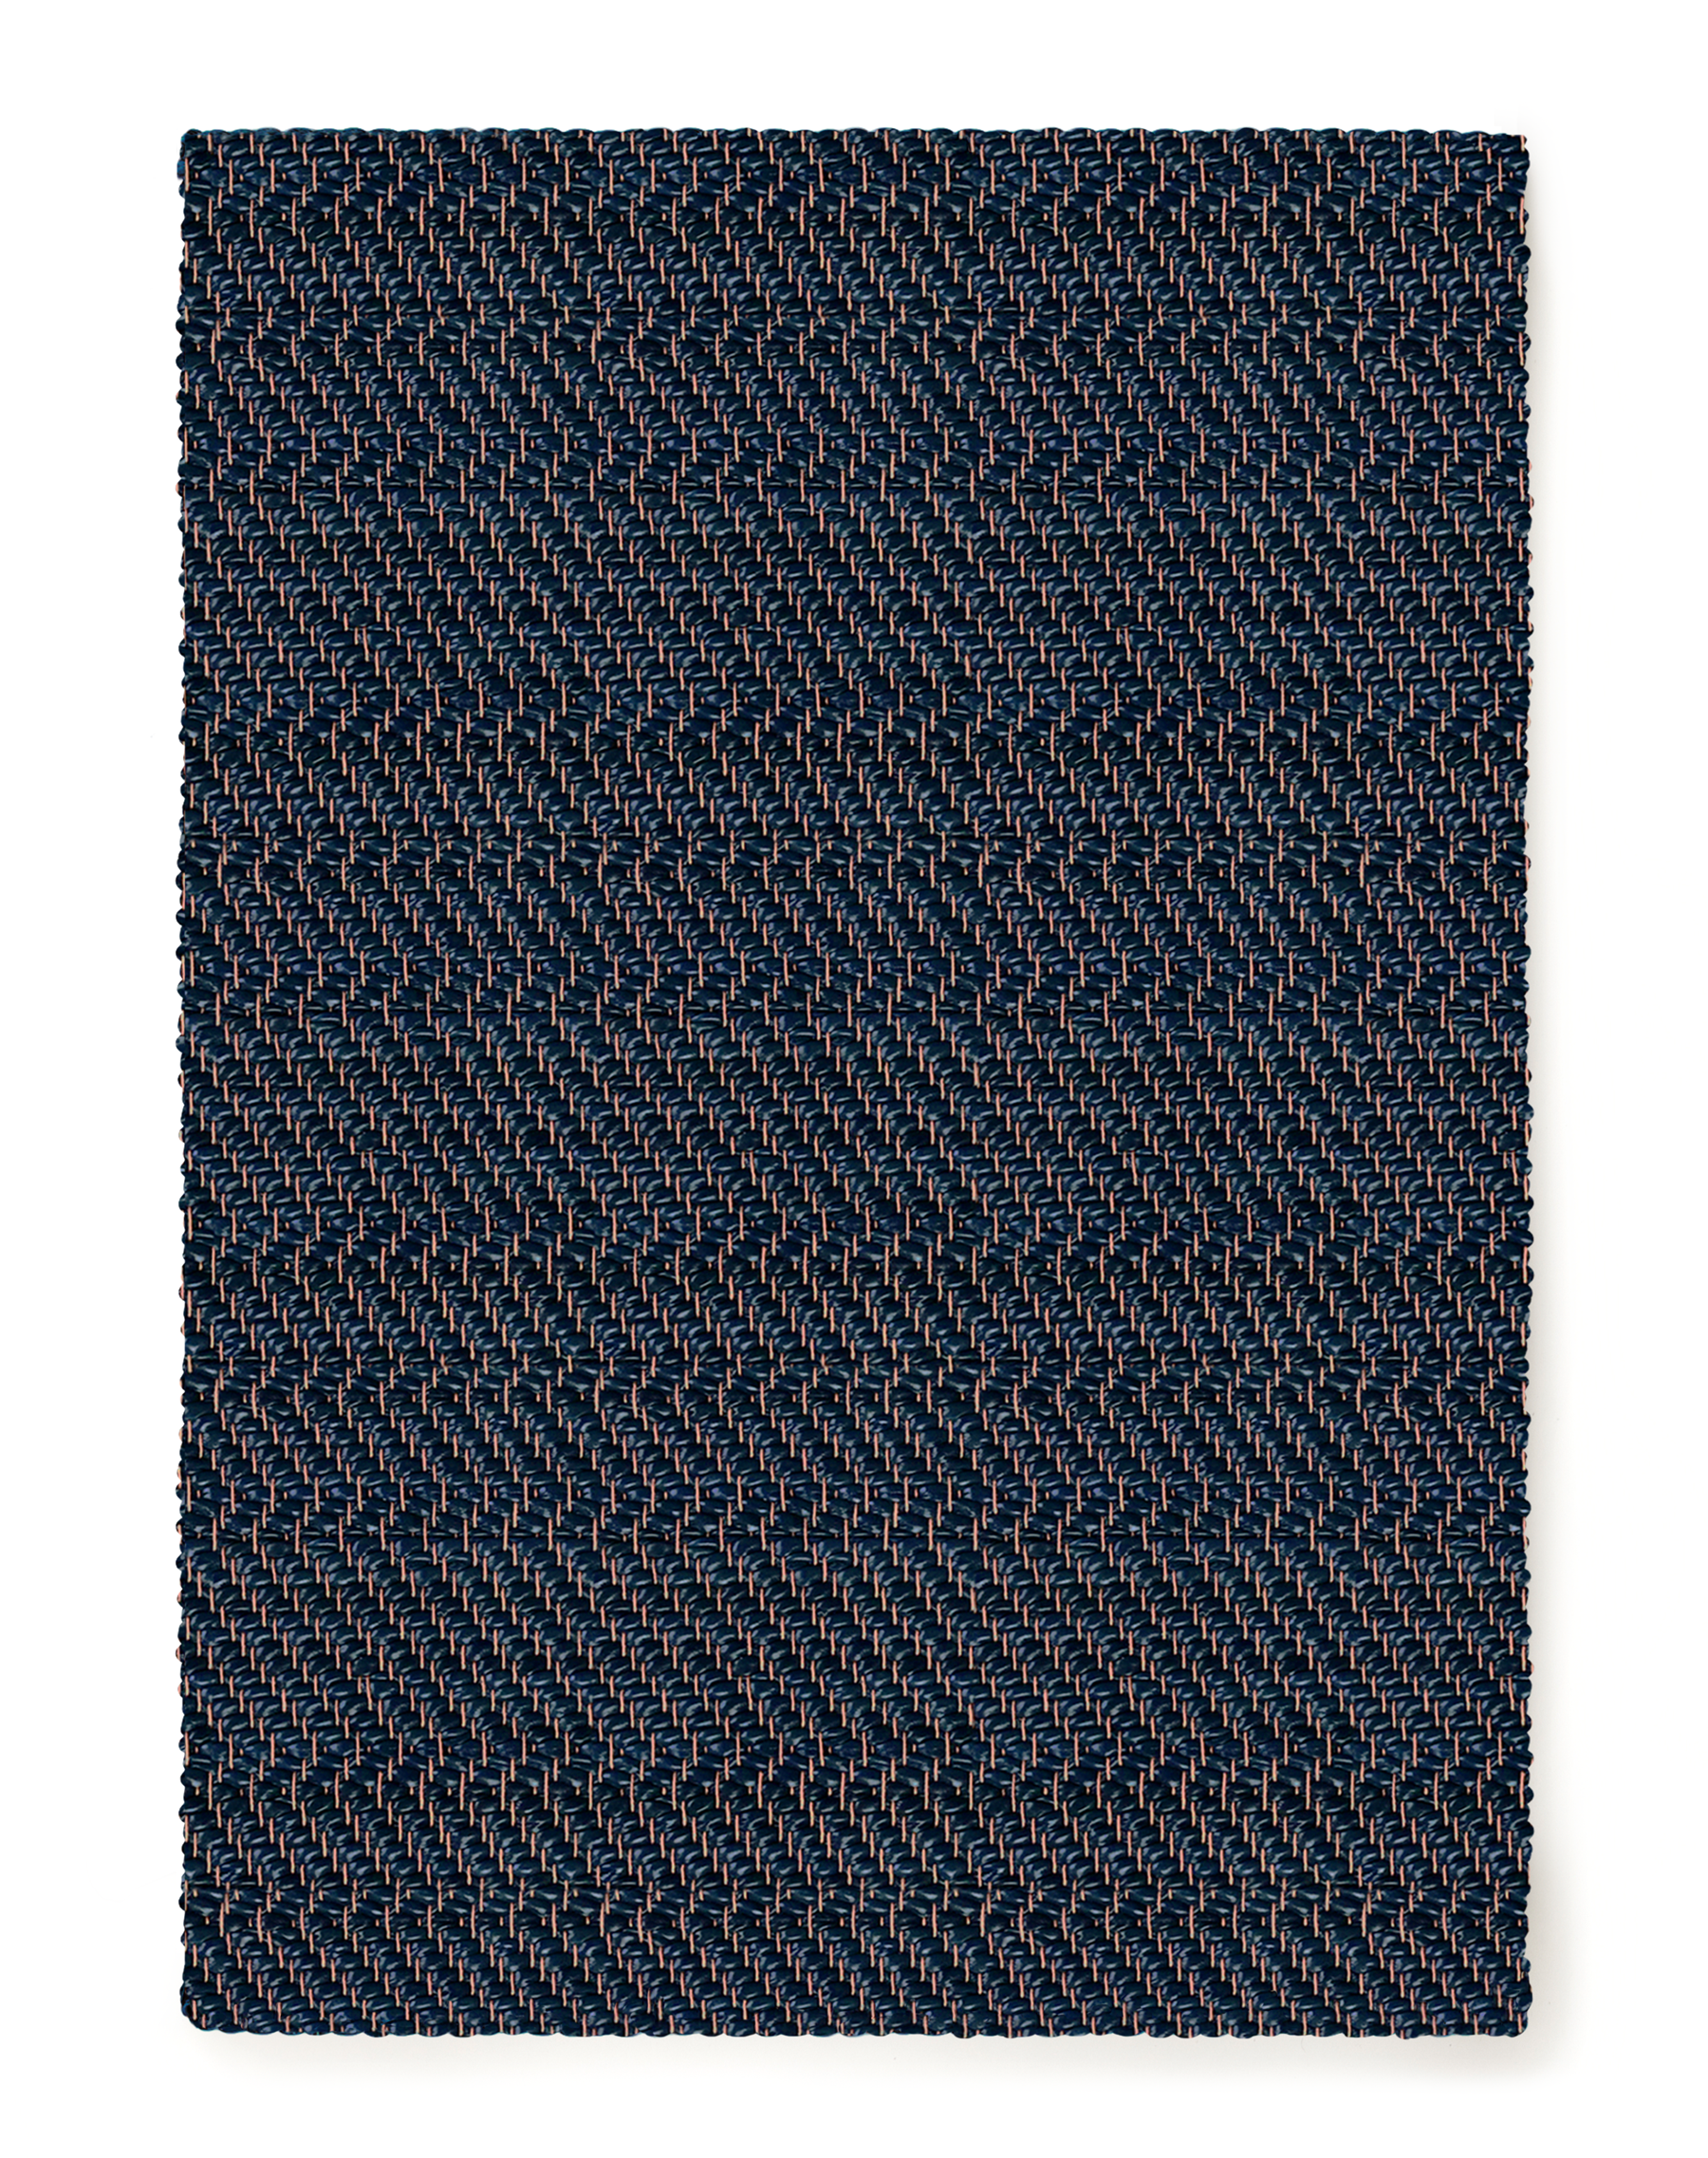 AVO_Woven-Leather-Rug_Selvage-Edge_Cliff_Indigo.png